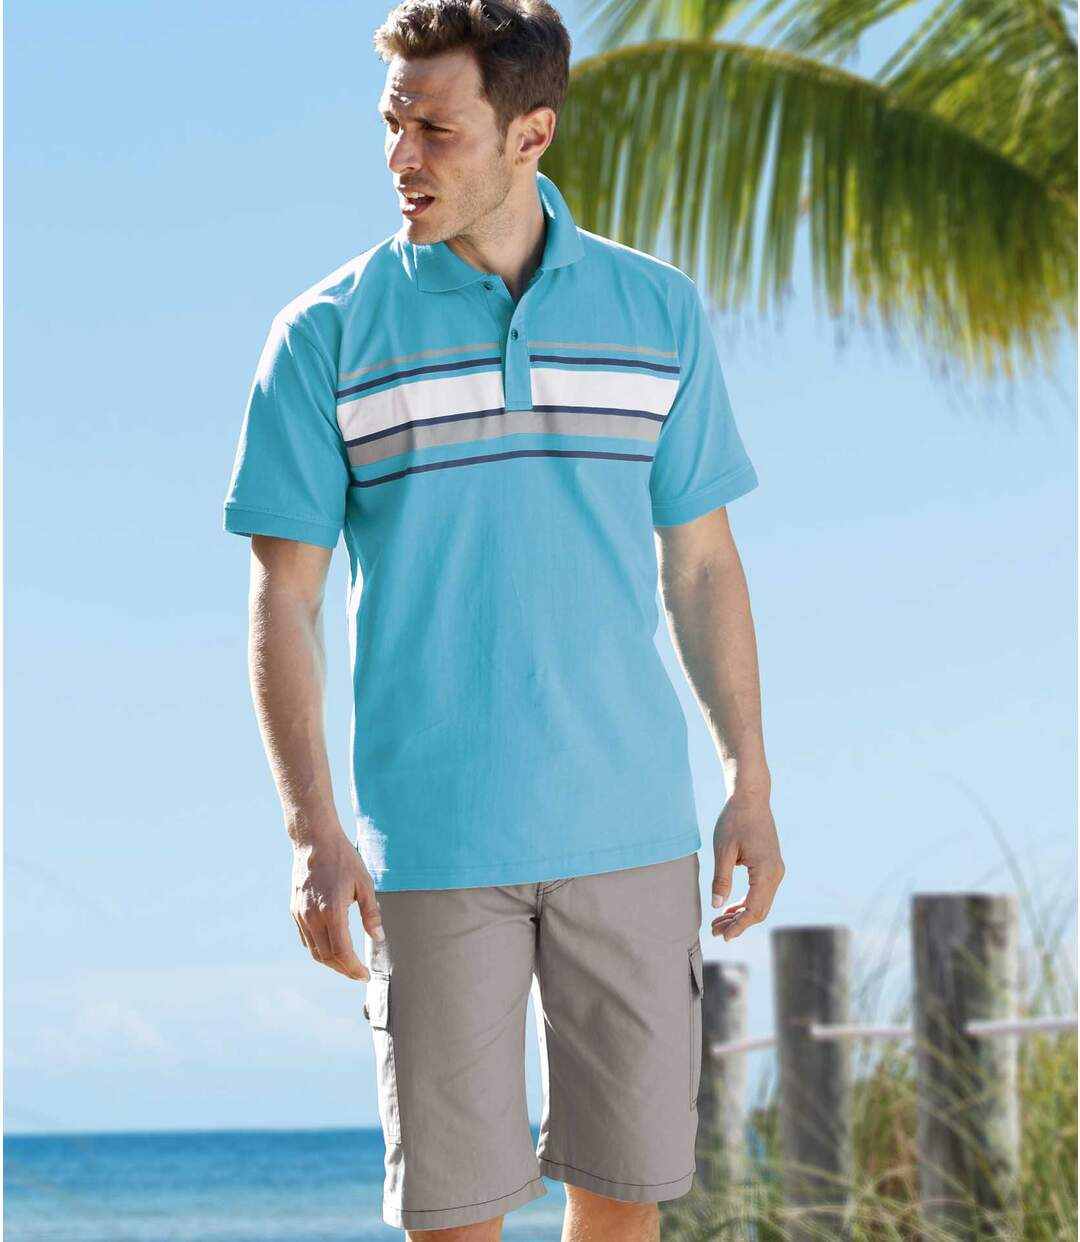 Pack of 2 Men's Polo Shirts - White Turquoise - Pacific Leisure